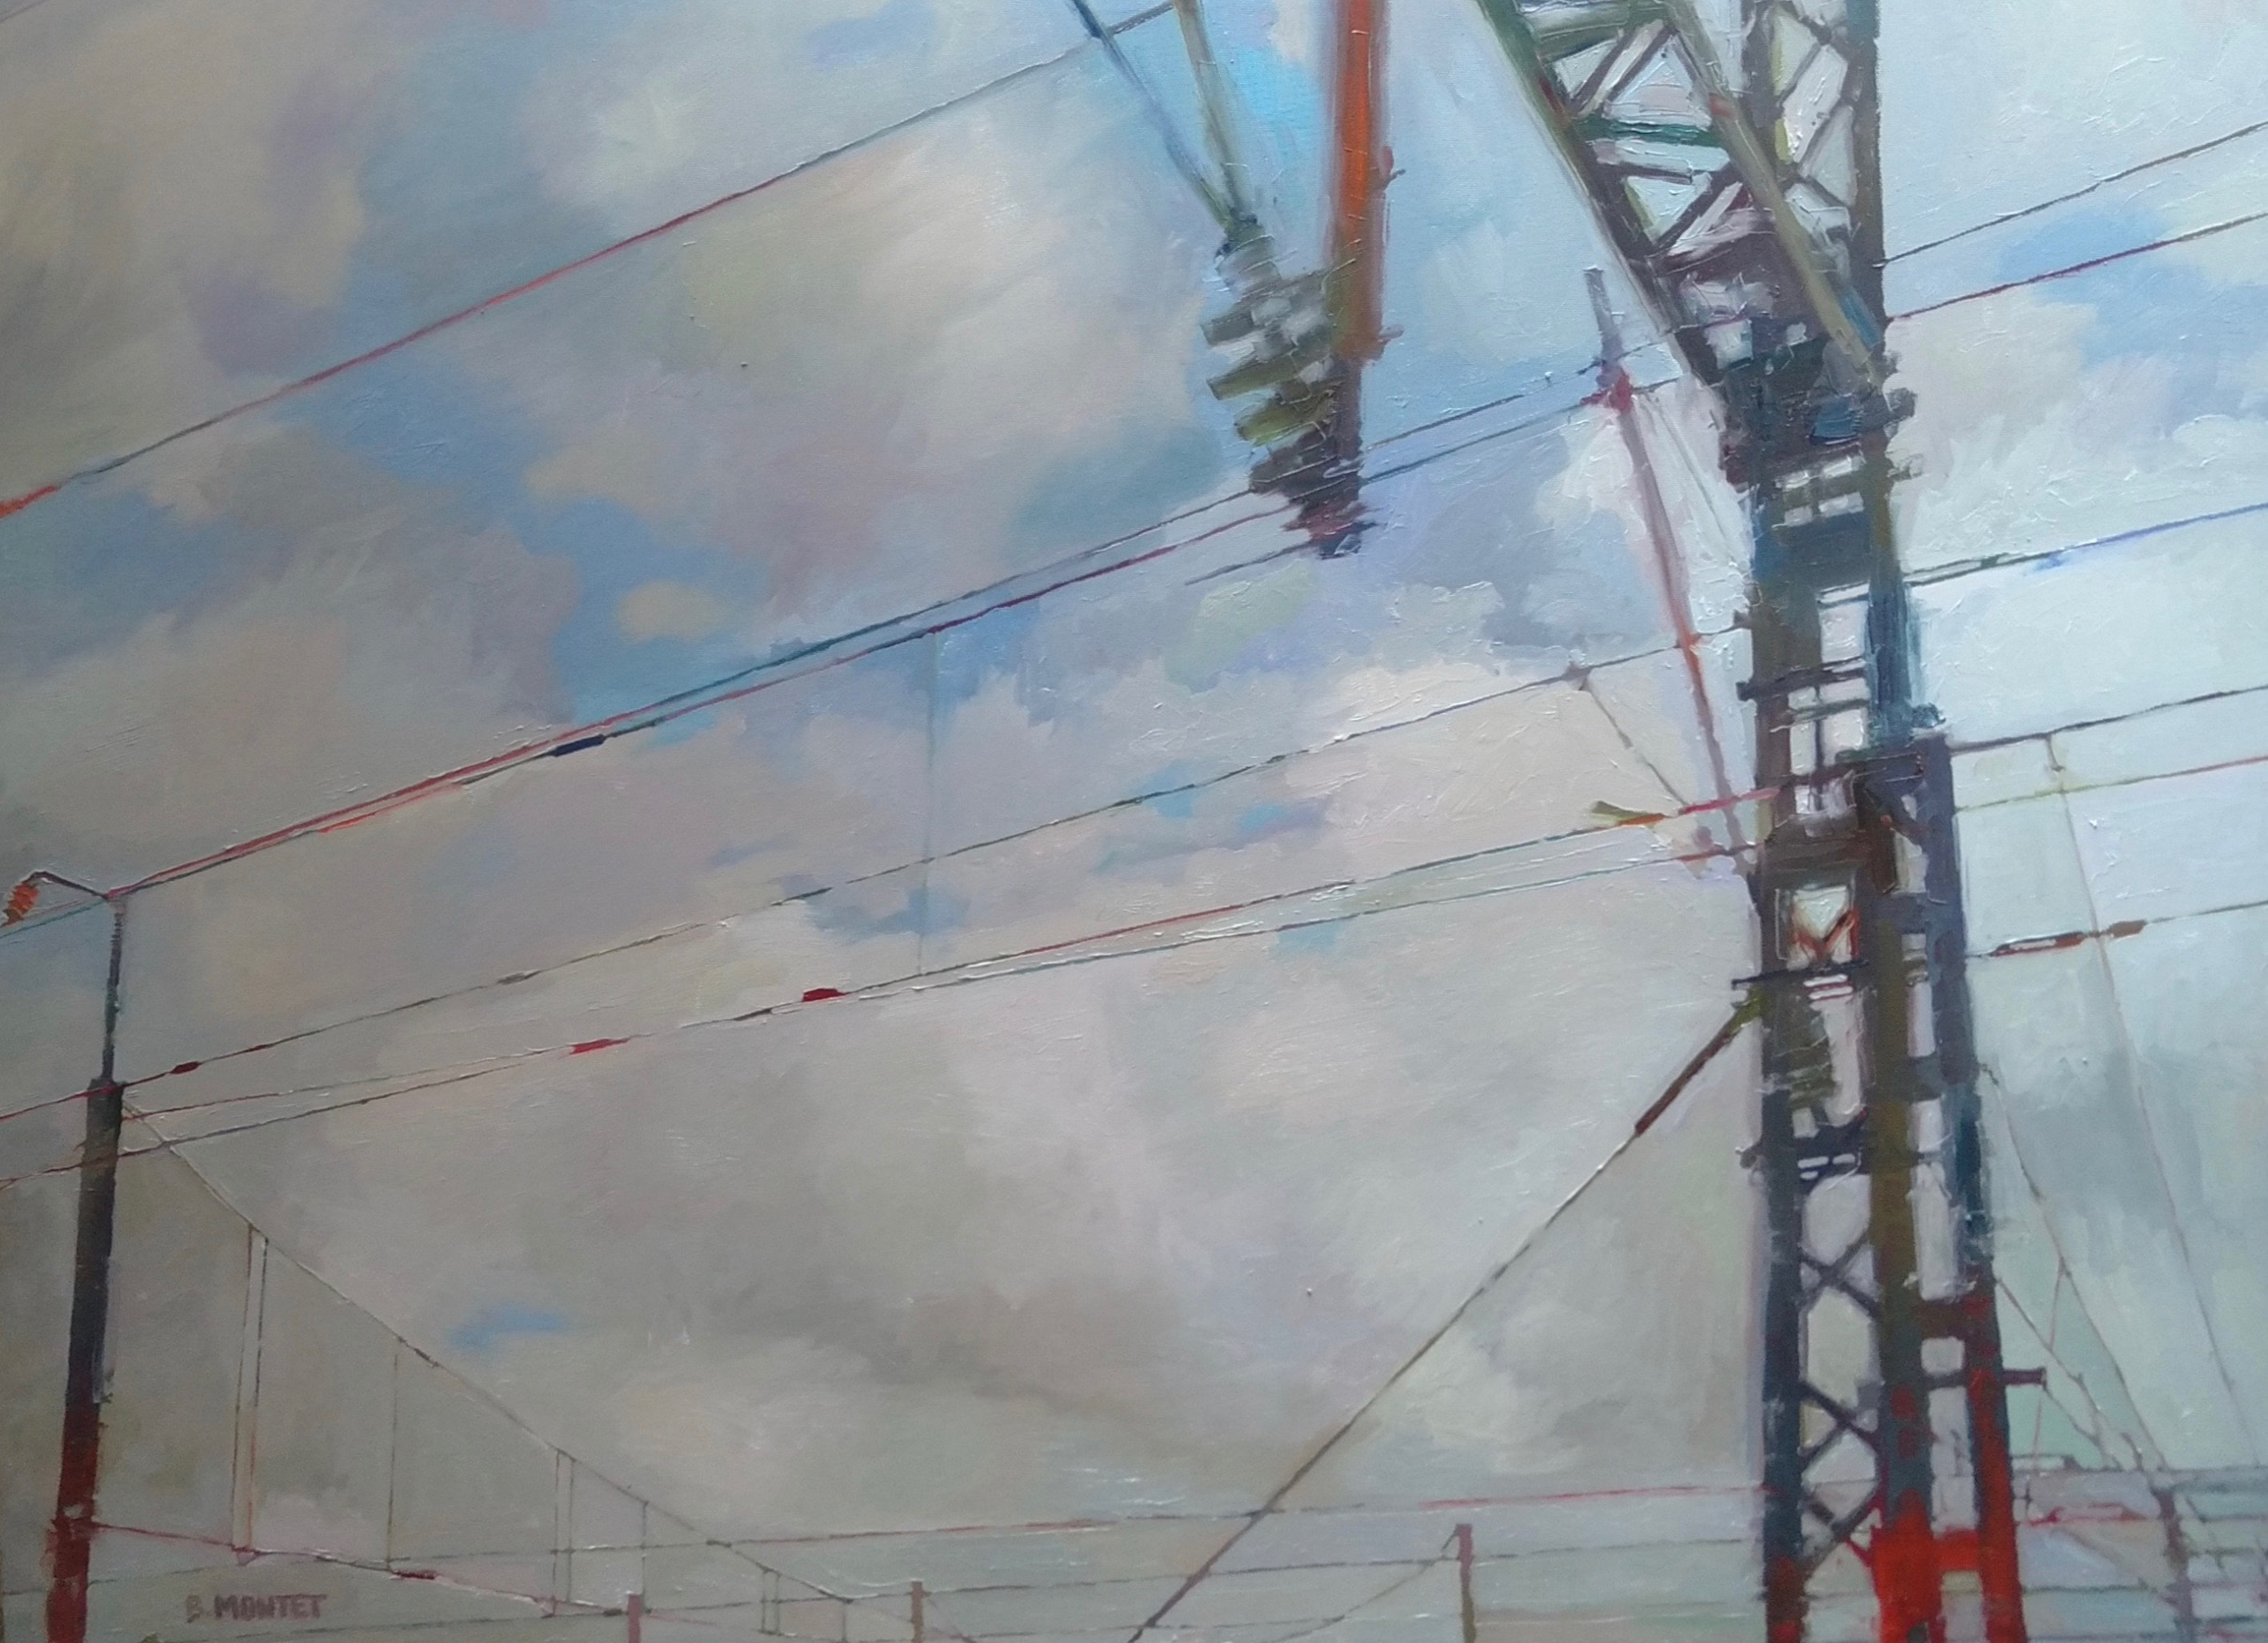 Electric line - Benoit Montet